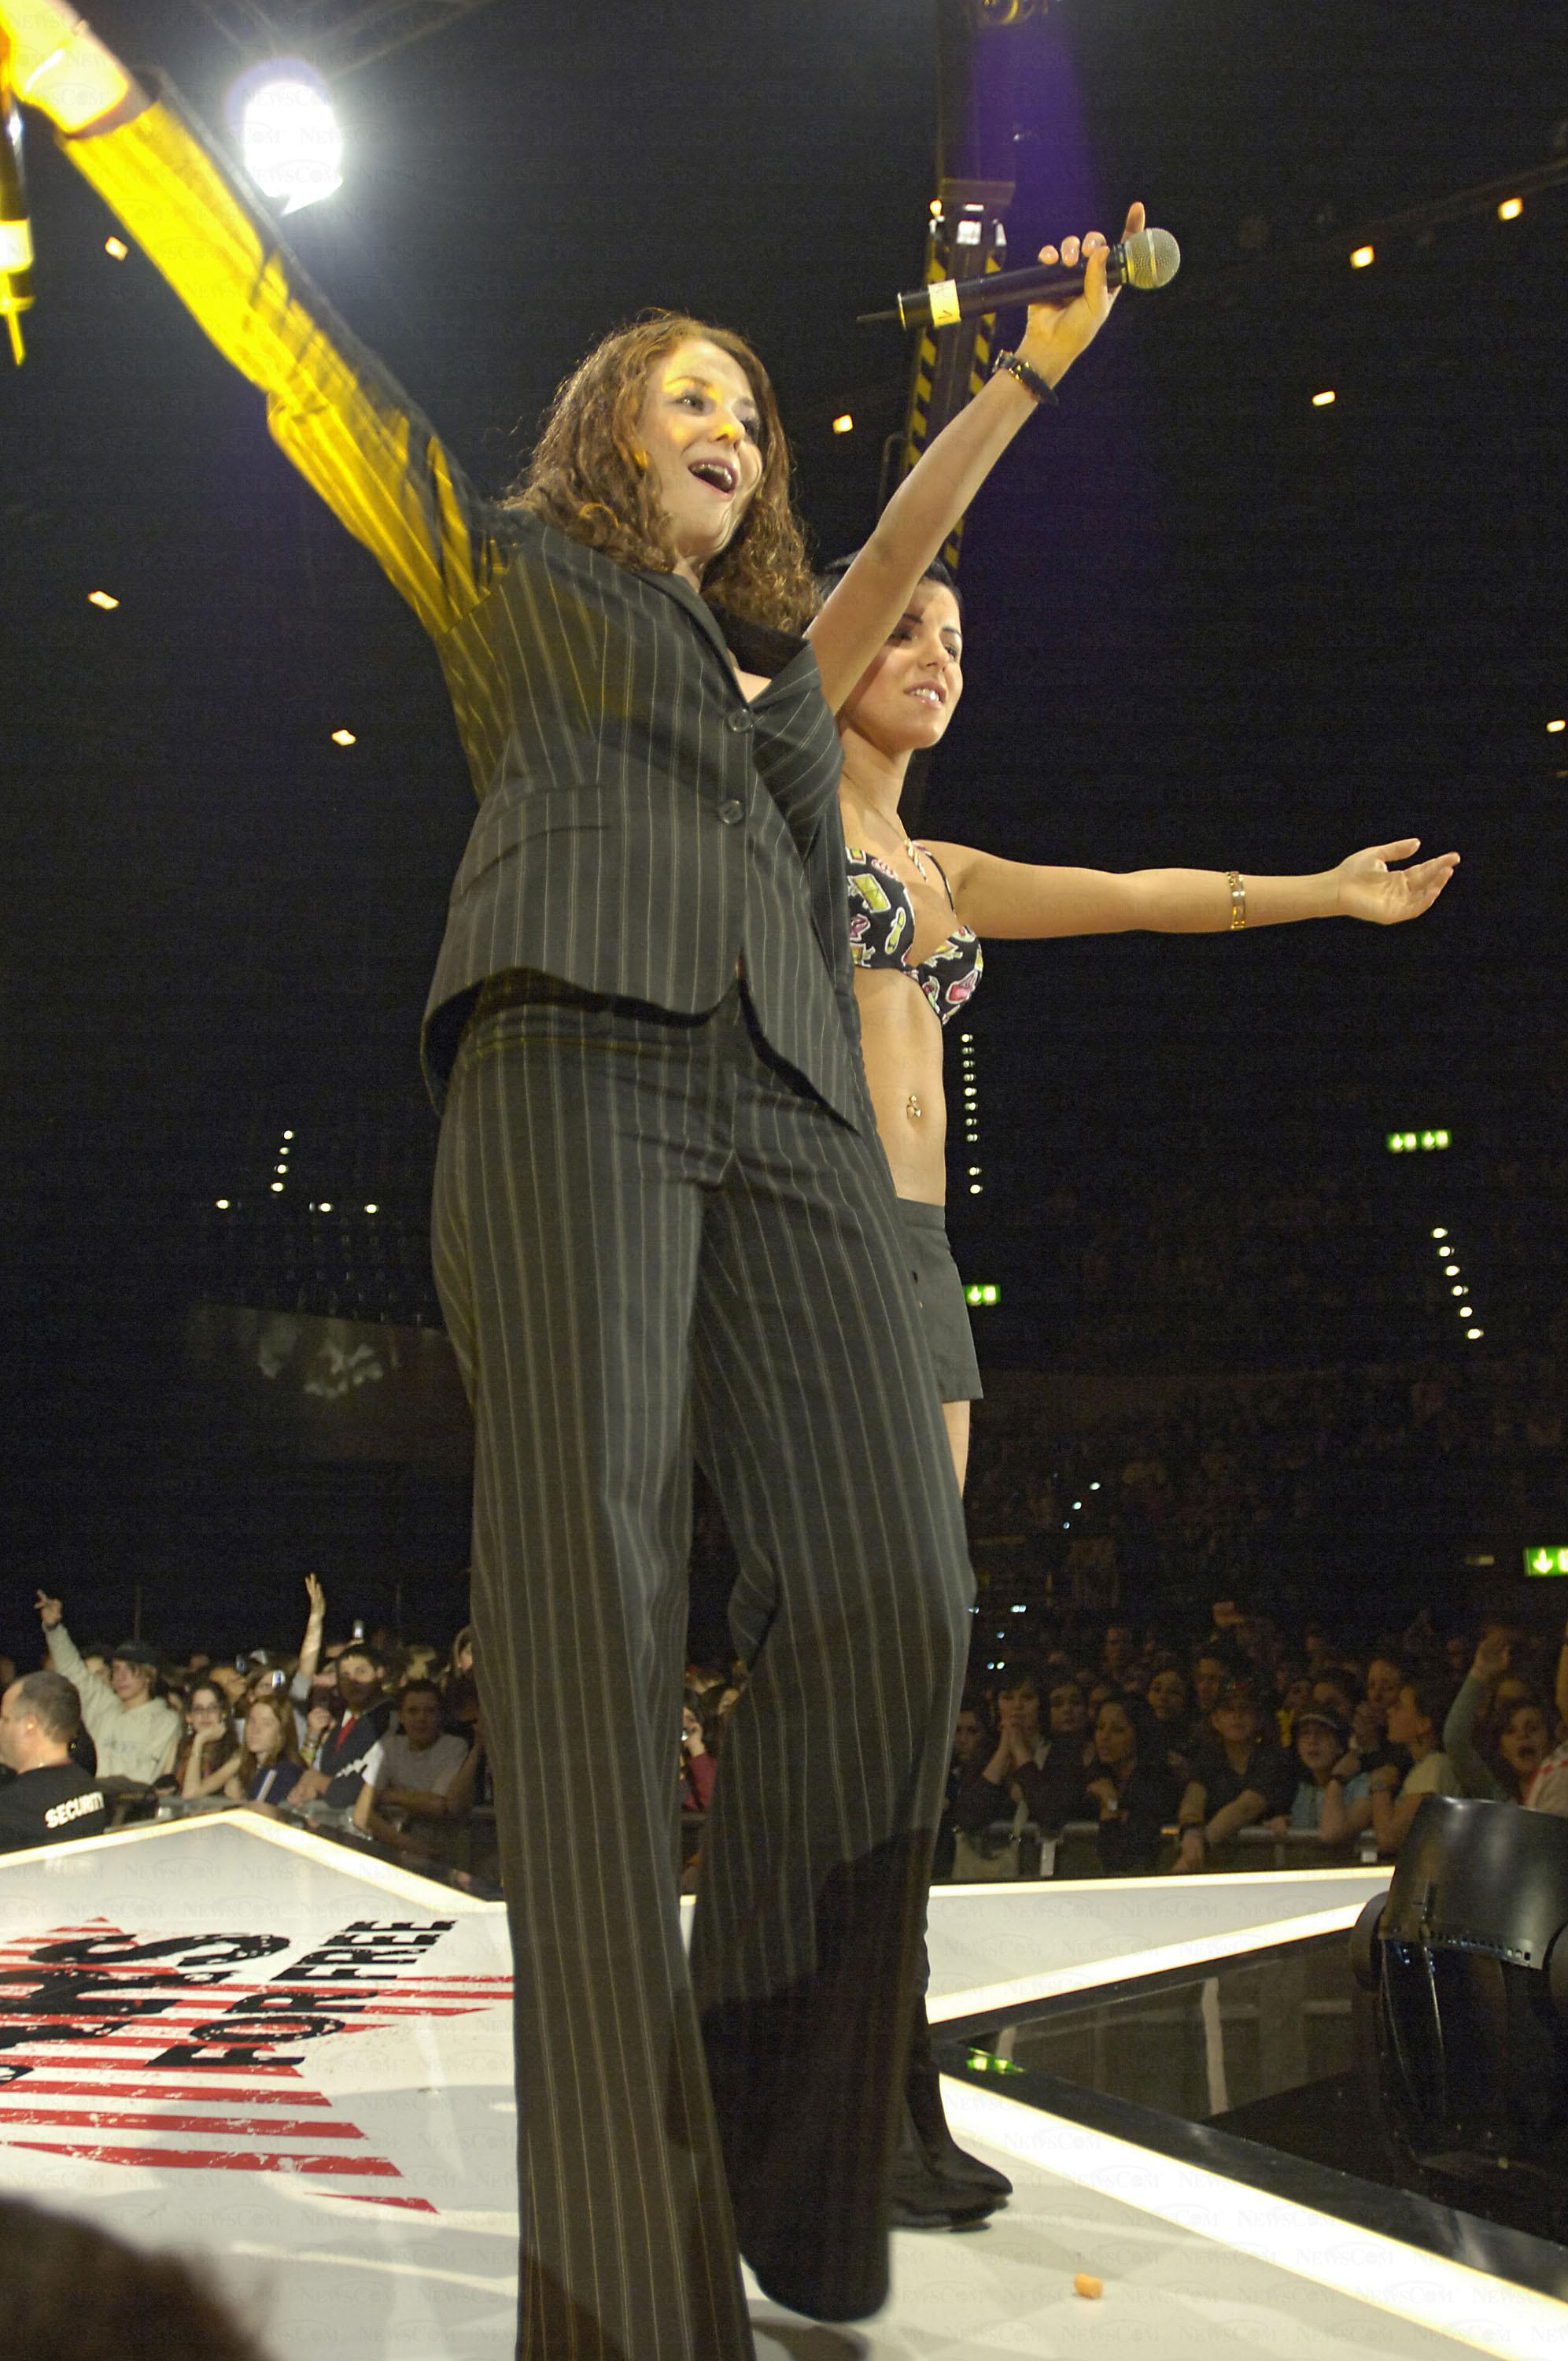 Tatu Perform at Energy Stars For Free 2005 21.12.2005